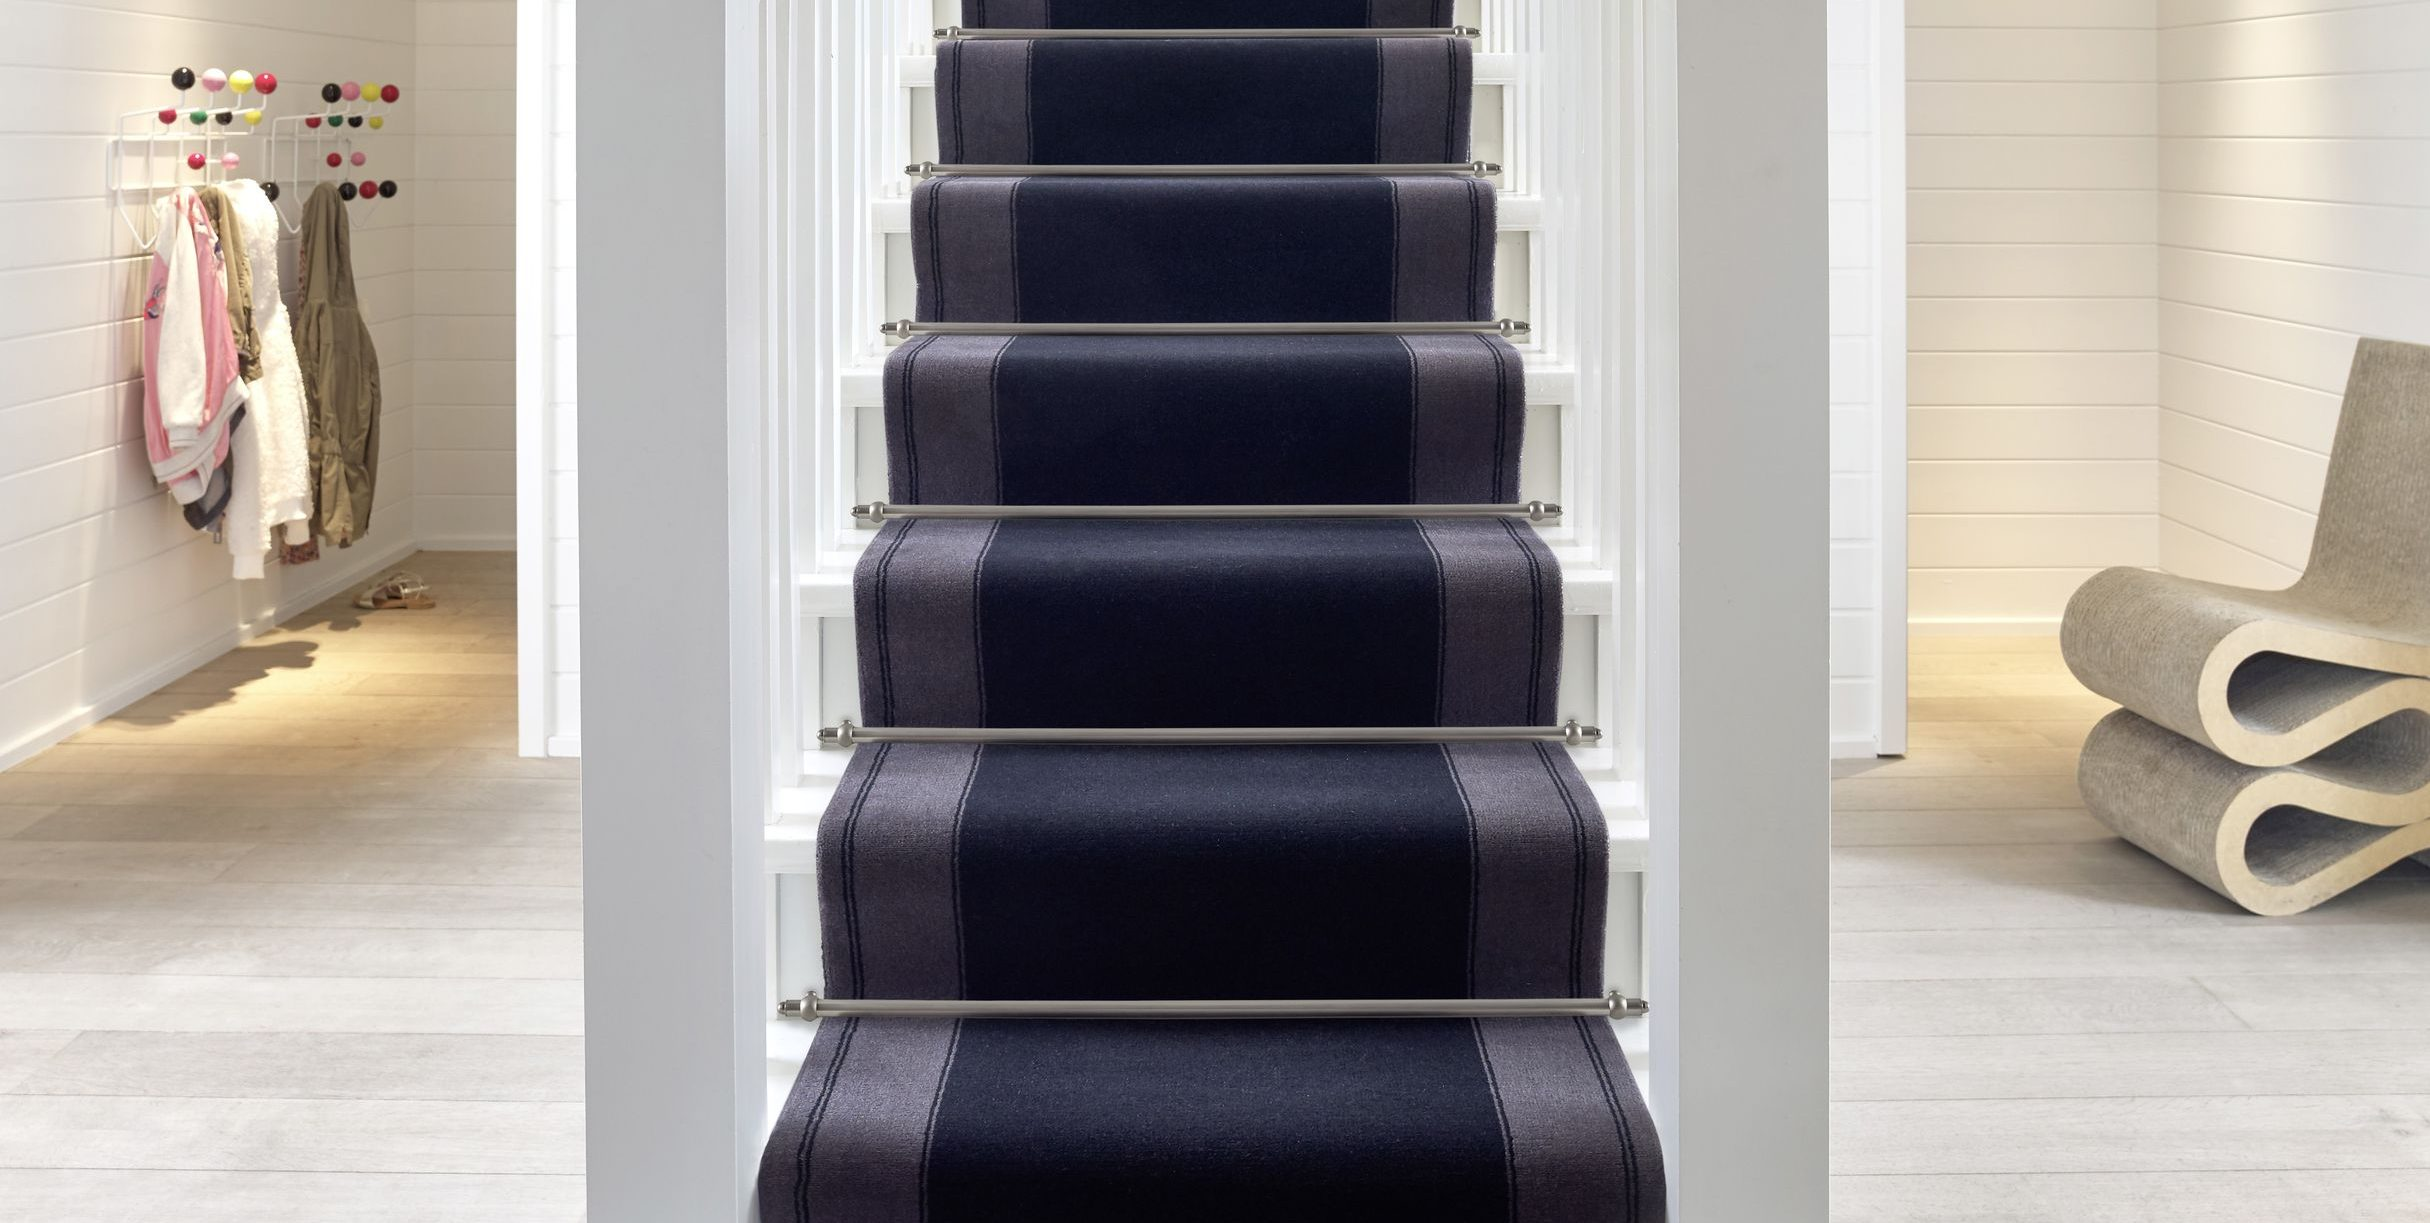 tapis d escalier id es de d coration int rieure french decor. Black Bedroom Furniture Sets. Home Design Ideas